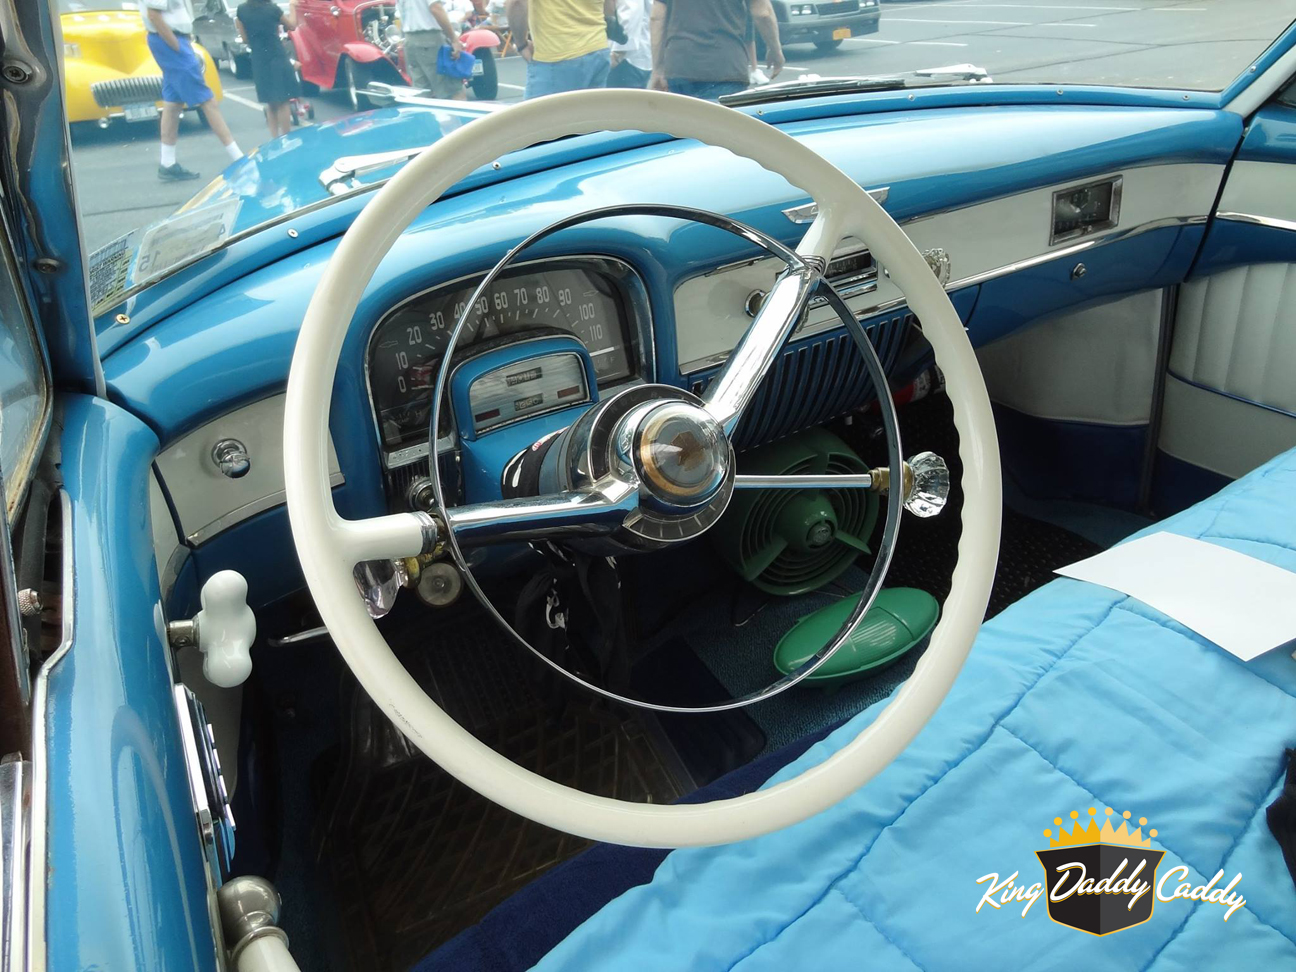 1951 Cadillac Coupe Deville King Daddy Caddy For Sale